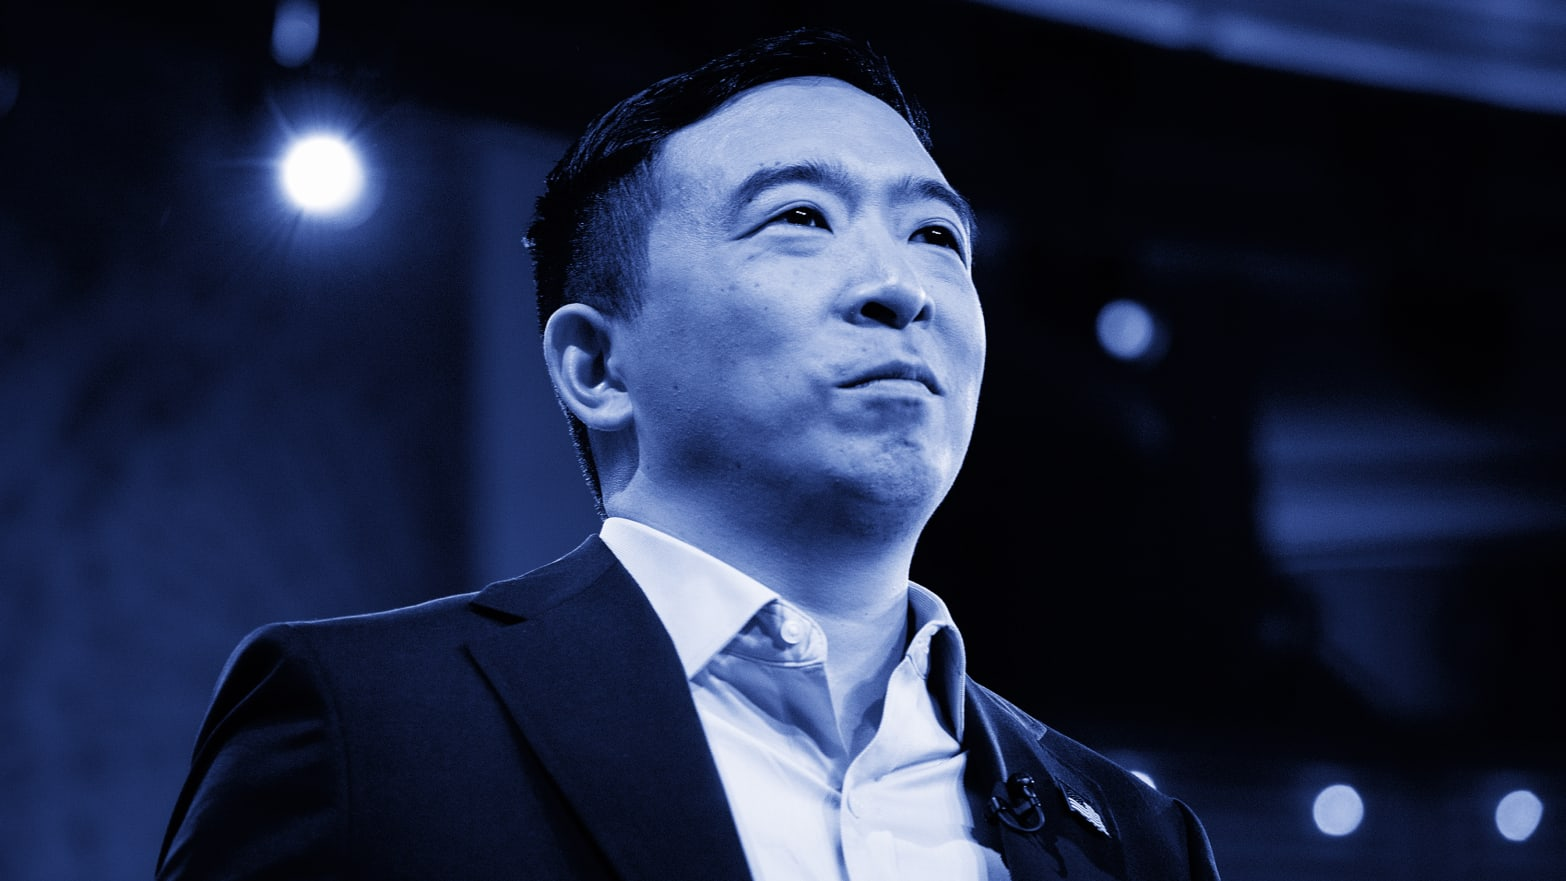 Andrew Yang's Dumb Democratic Debate Gimmick Stepped on His Own Important Message